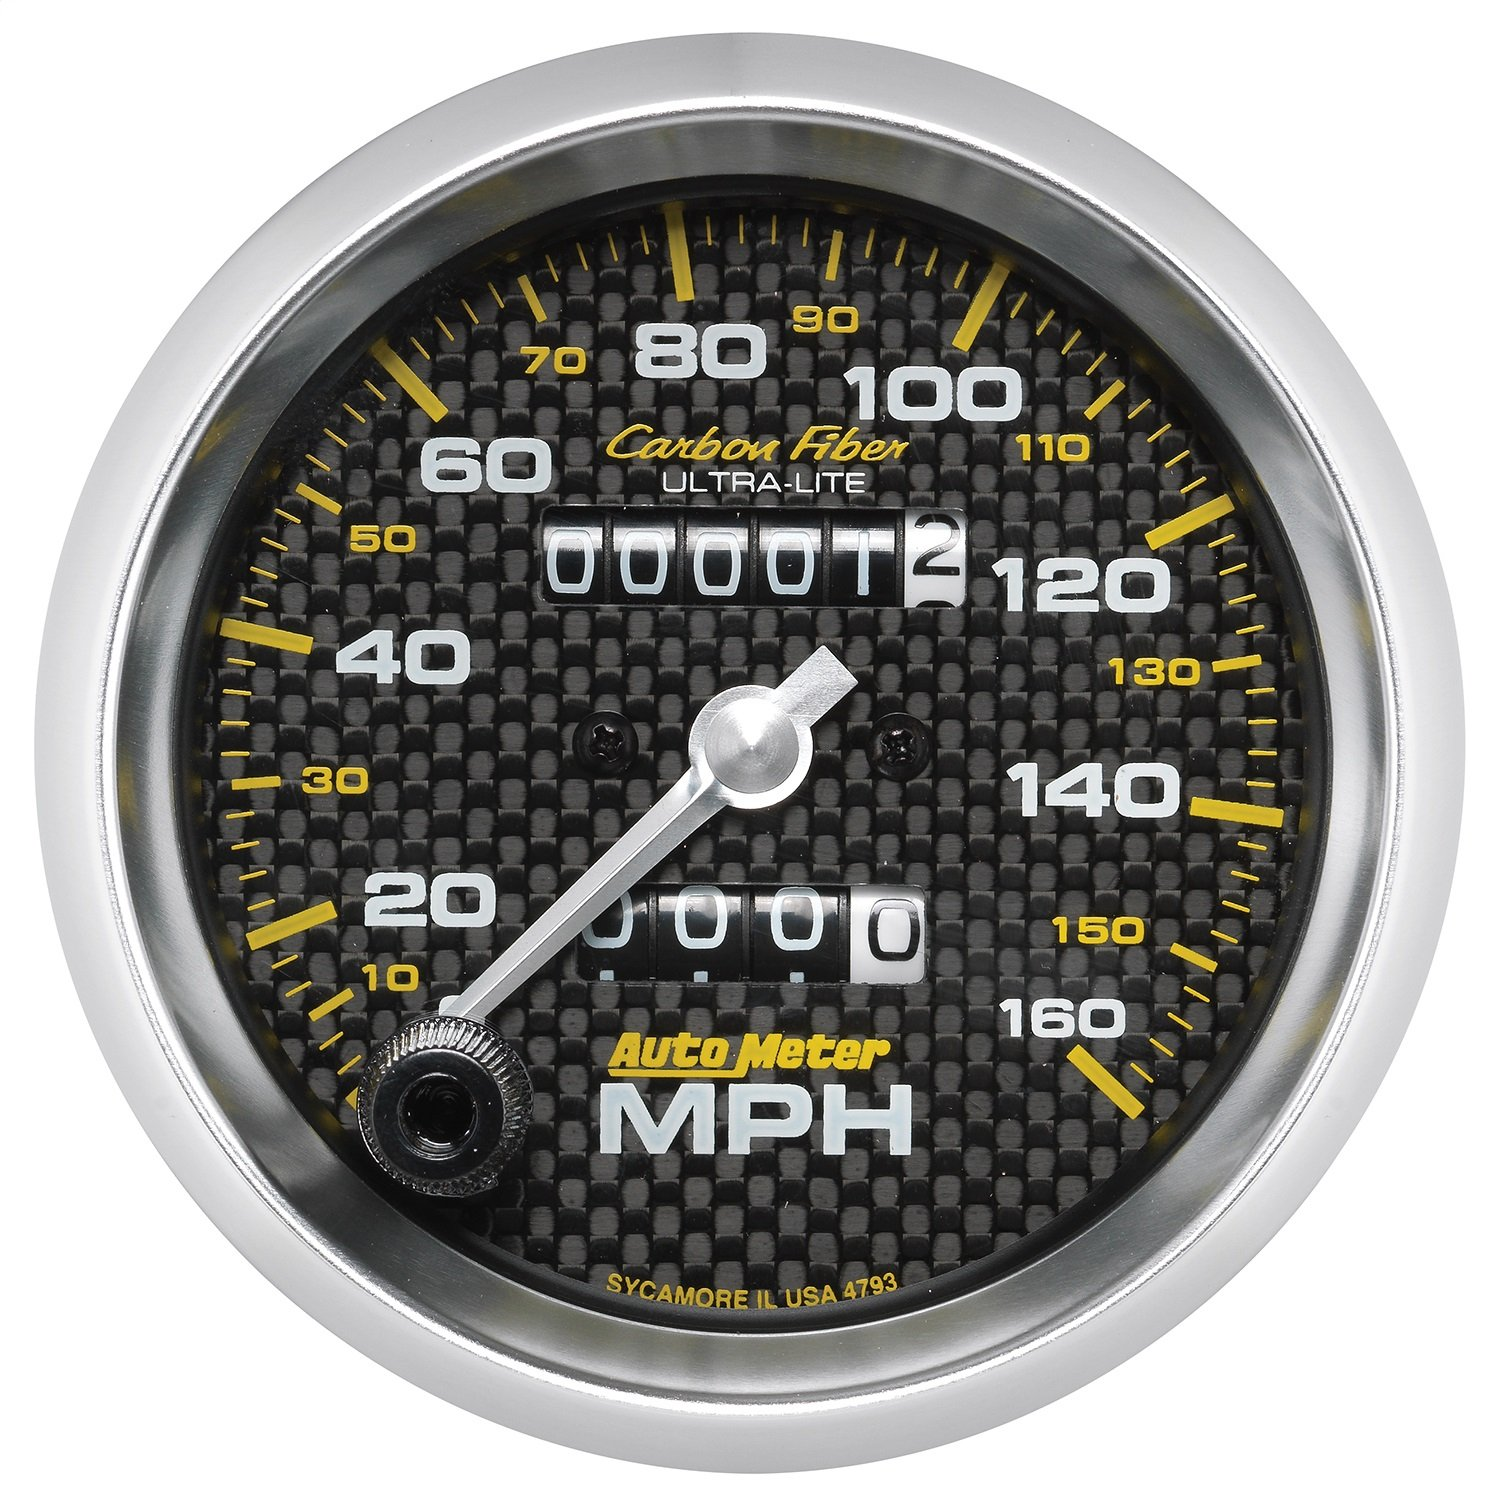 AUTO METER 4793 Carbon Fiber 3-3/8'' Mechanical Speedometer (0-160 MPH, 85.7mm) by AUTO METER